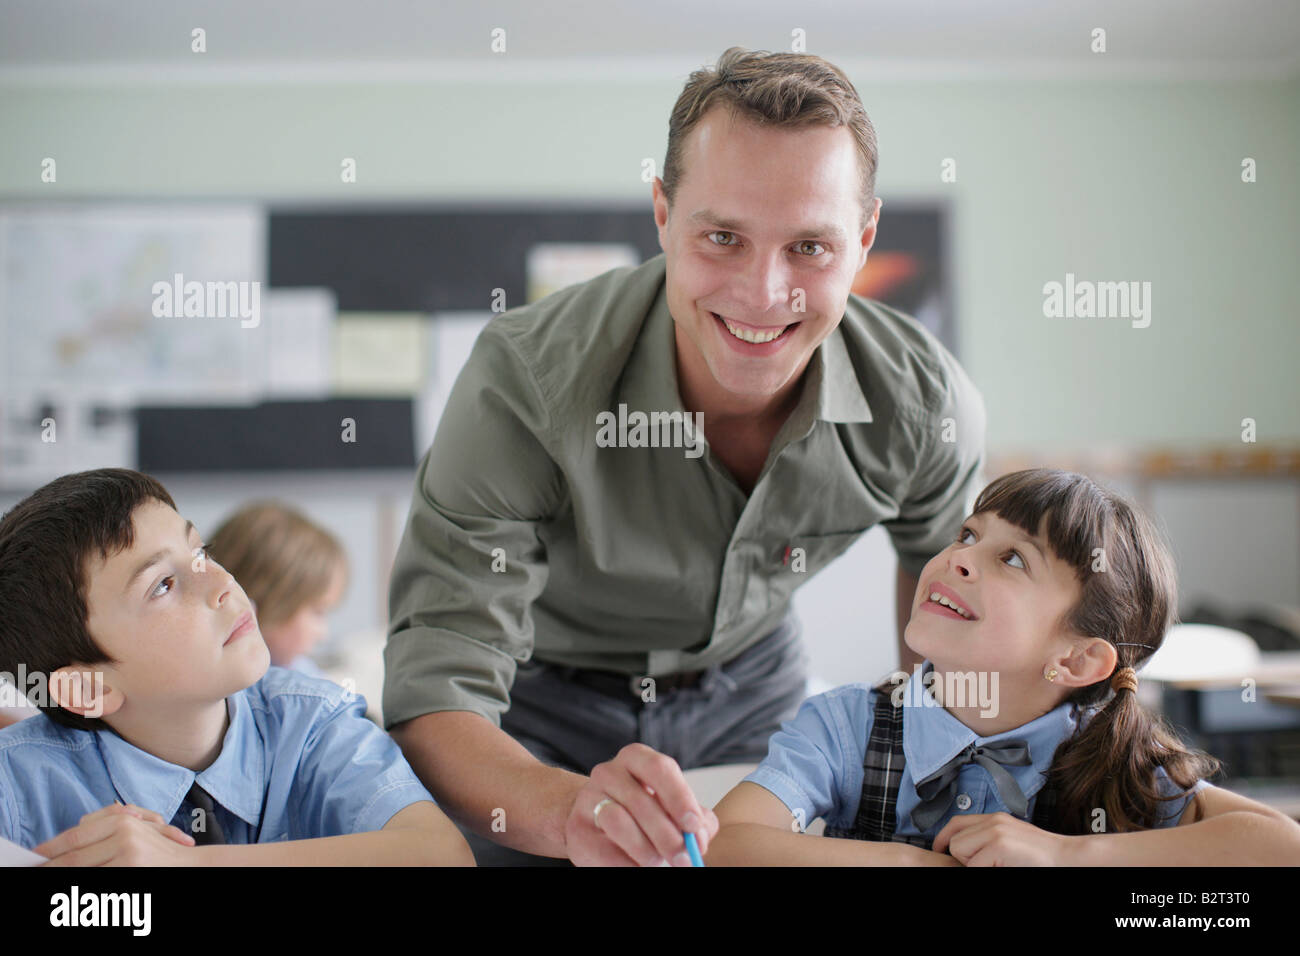 Male teacher correcting student work - Stock Image